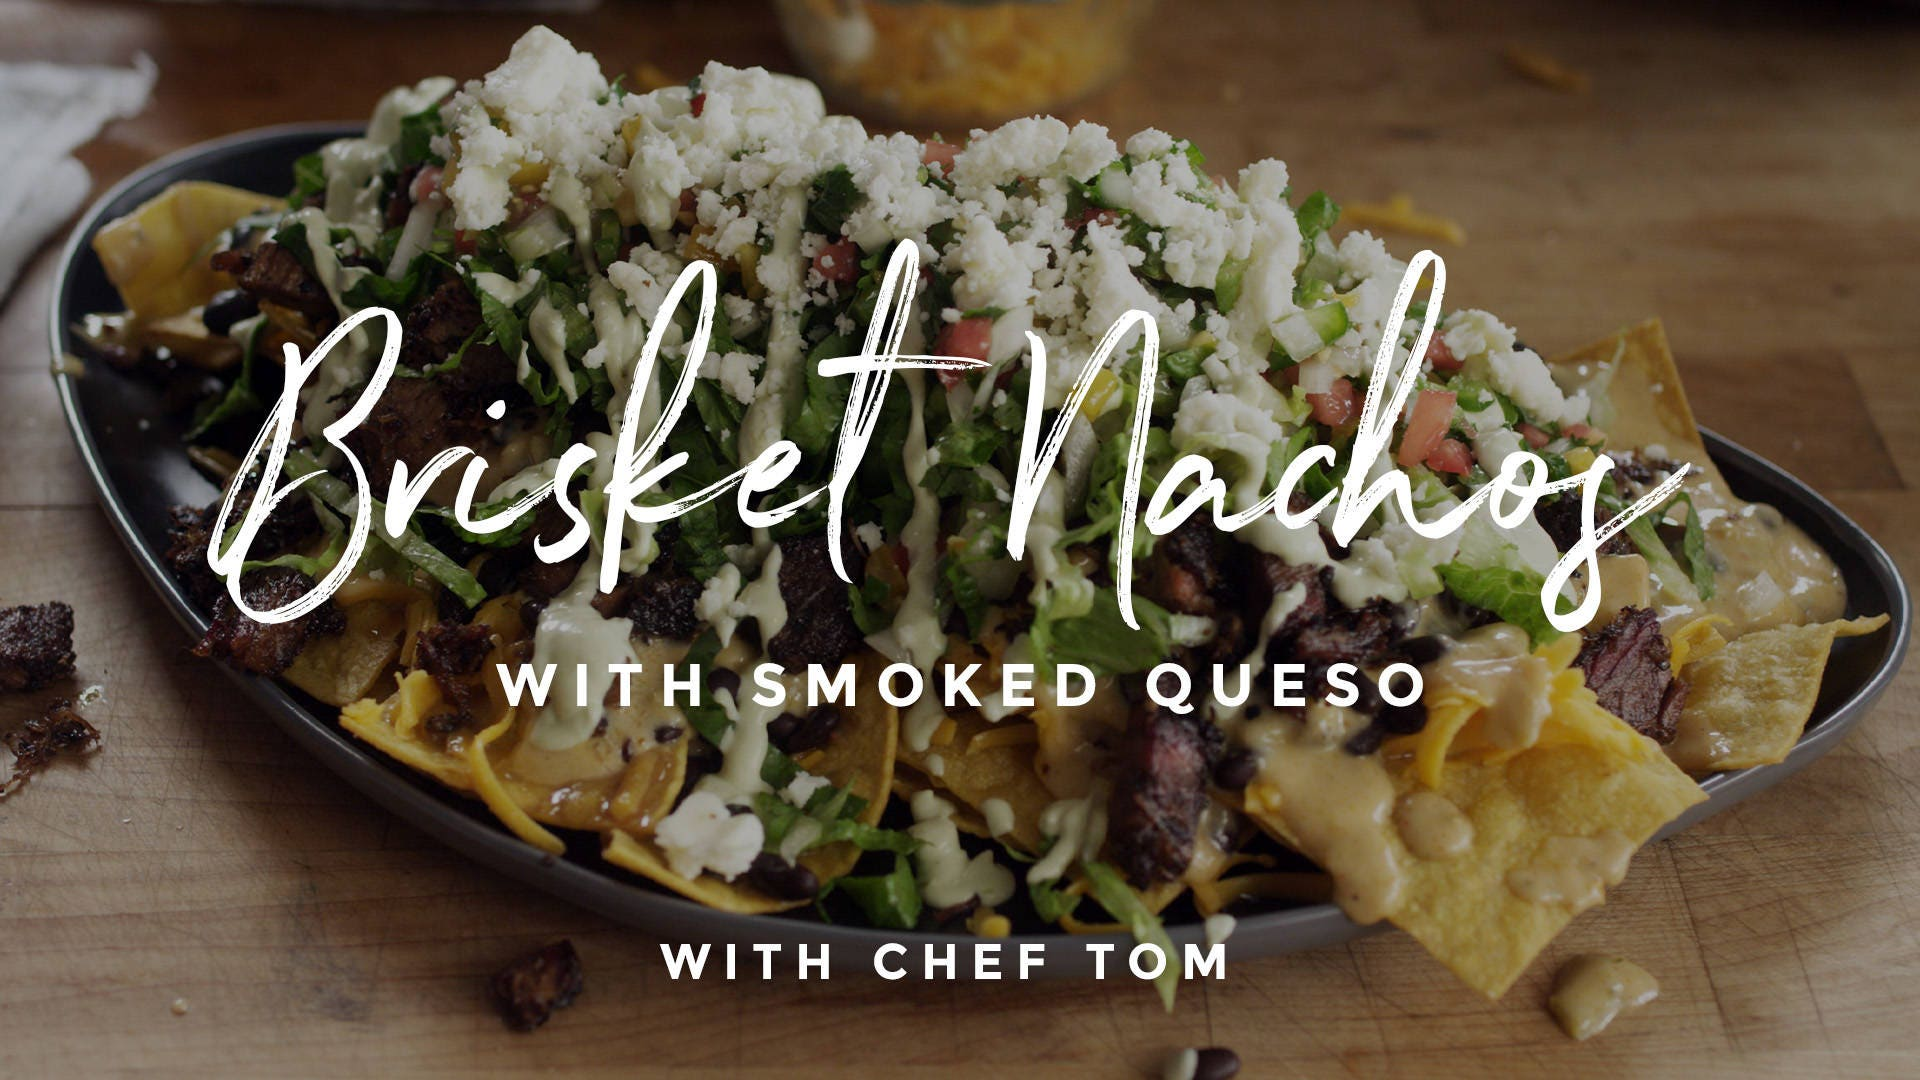 How to make Brisket Nachos with Smoked Queso